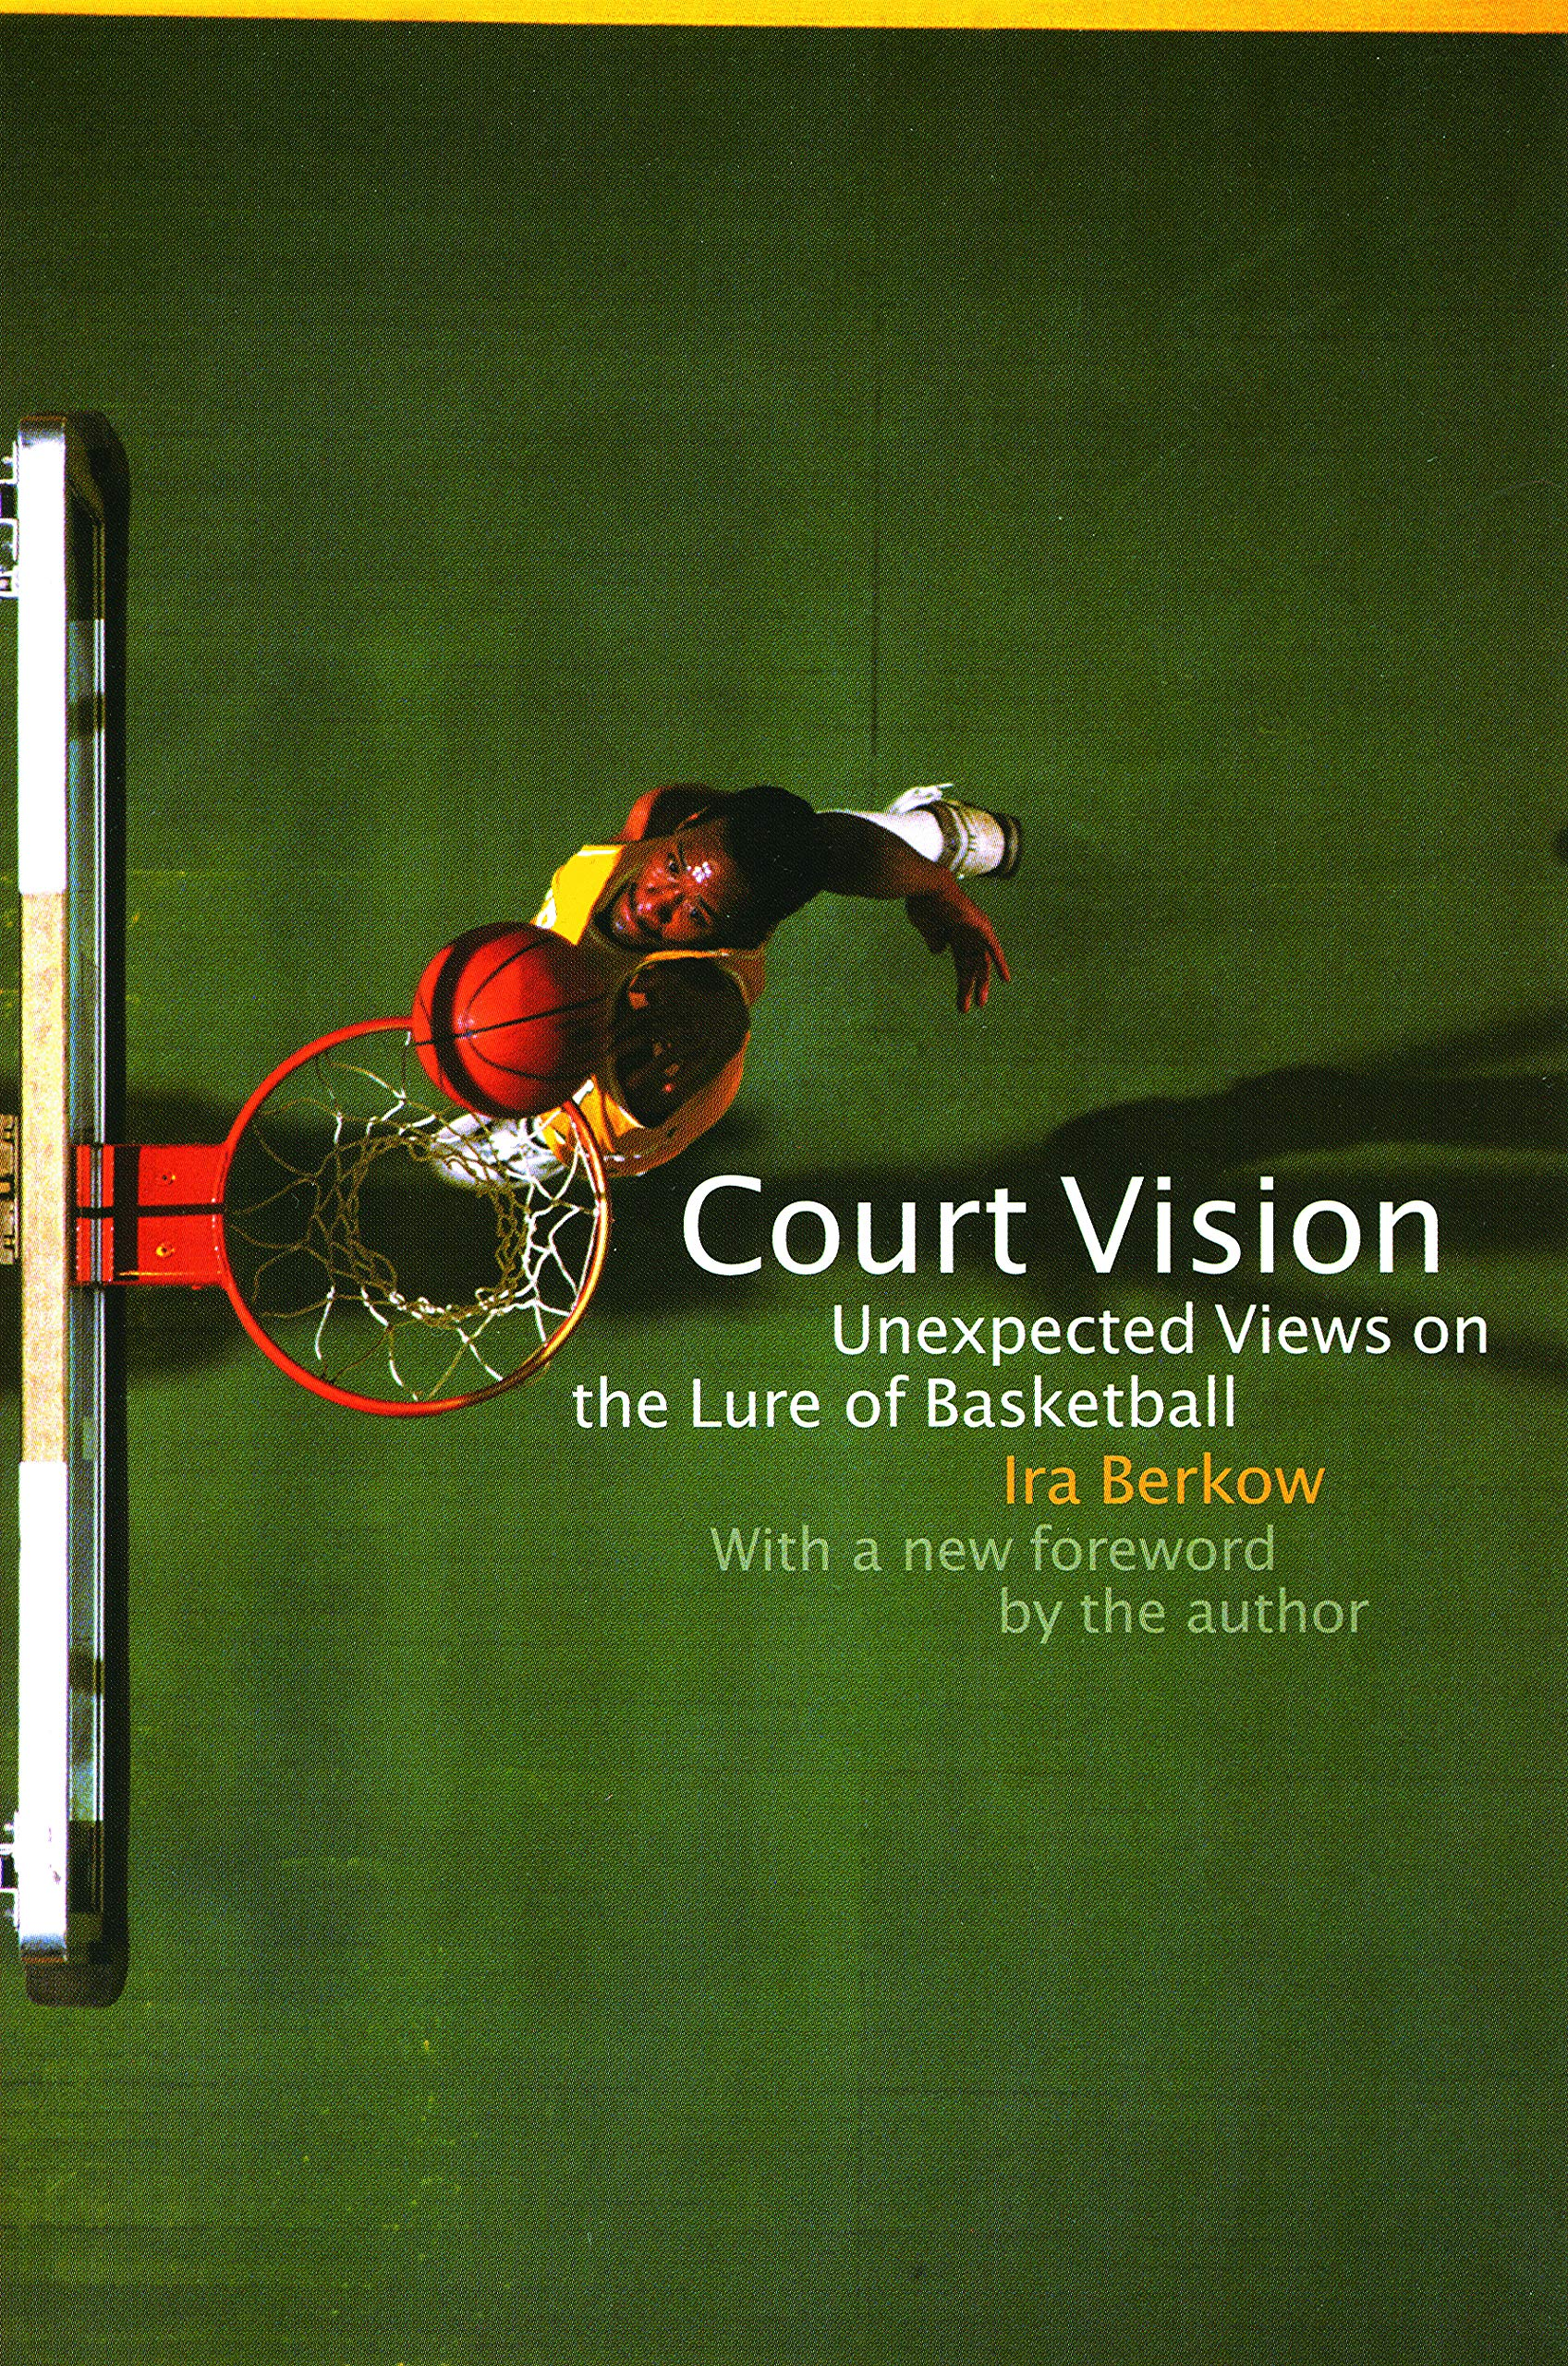 Court Vision: Unexpected Views on the Lure of Basketball ...